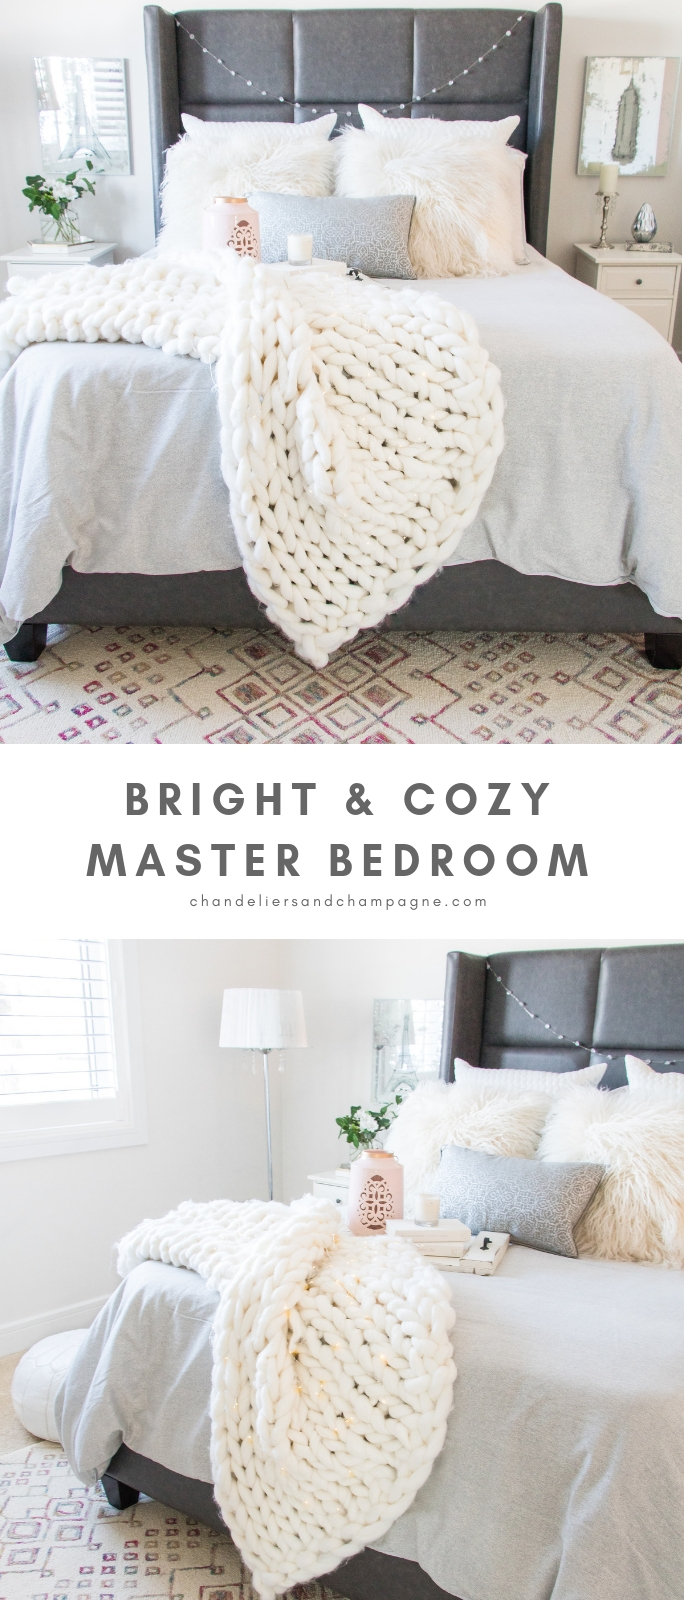 Our Bright and Cozy Master Bedroom • Chandeliers and Champagne